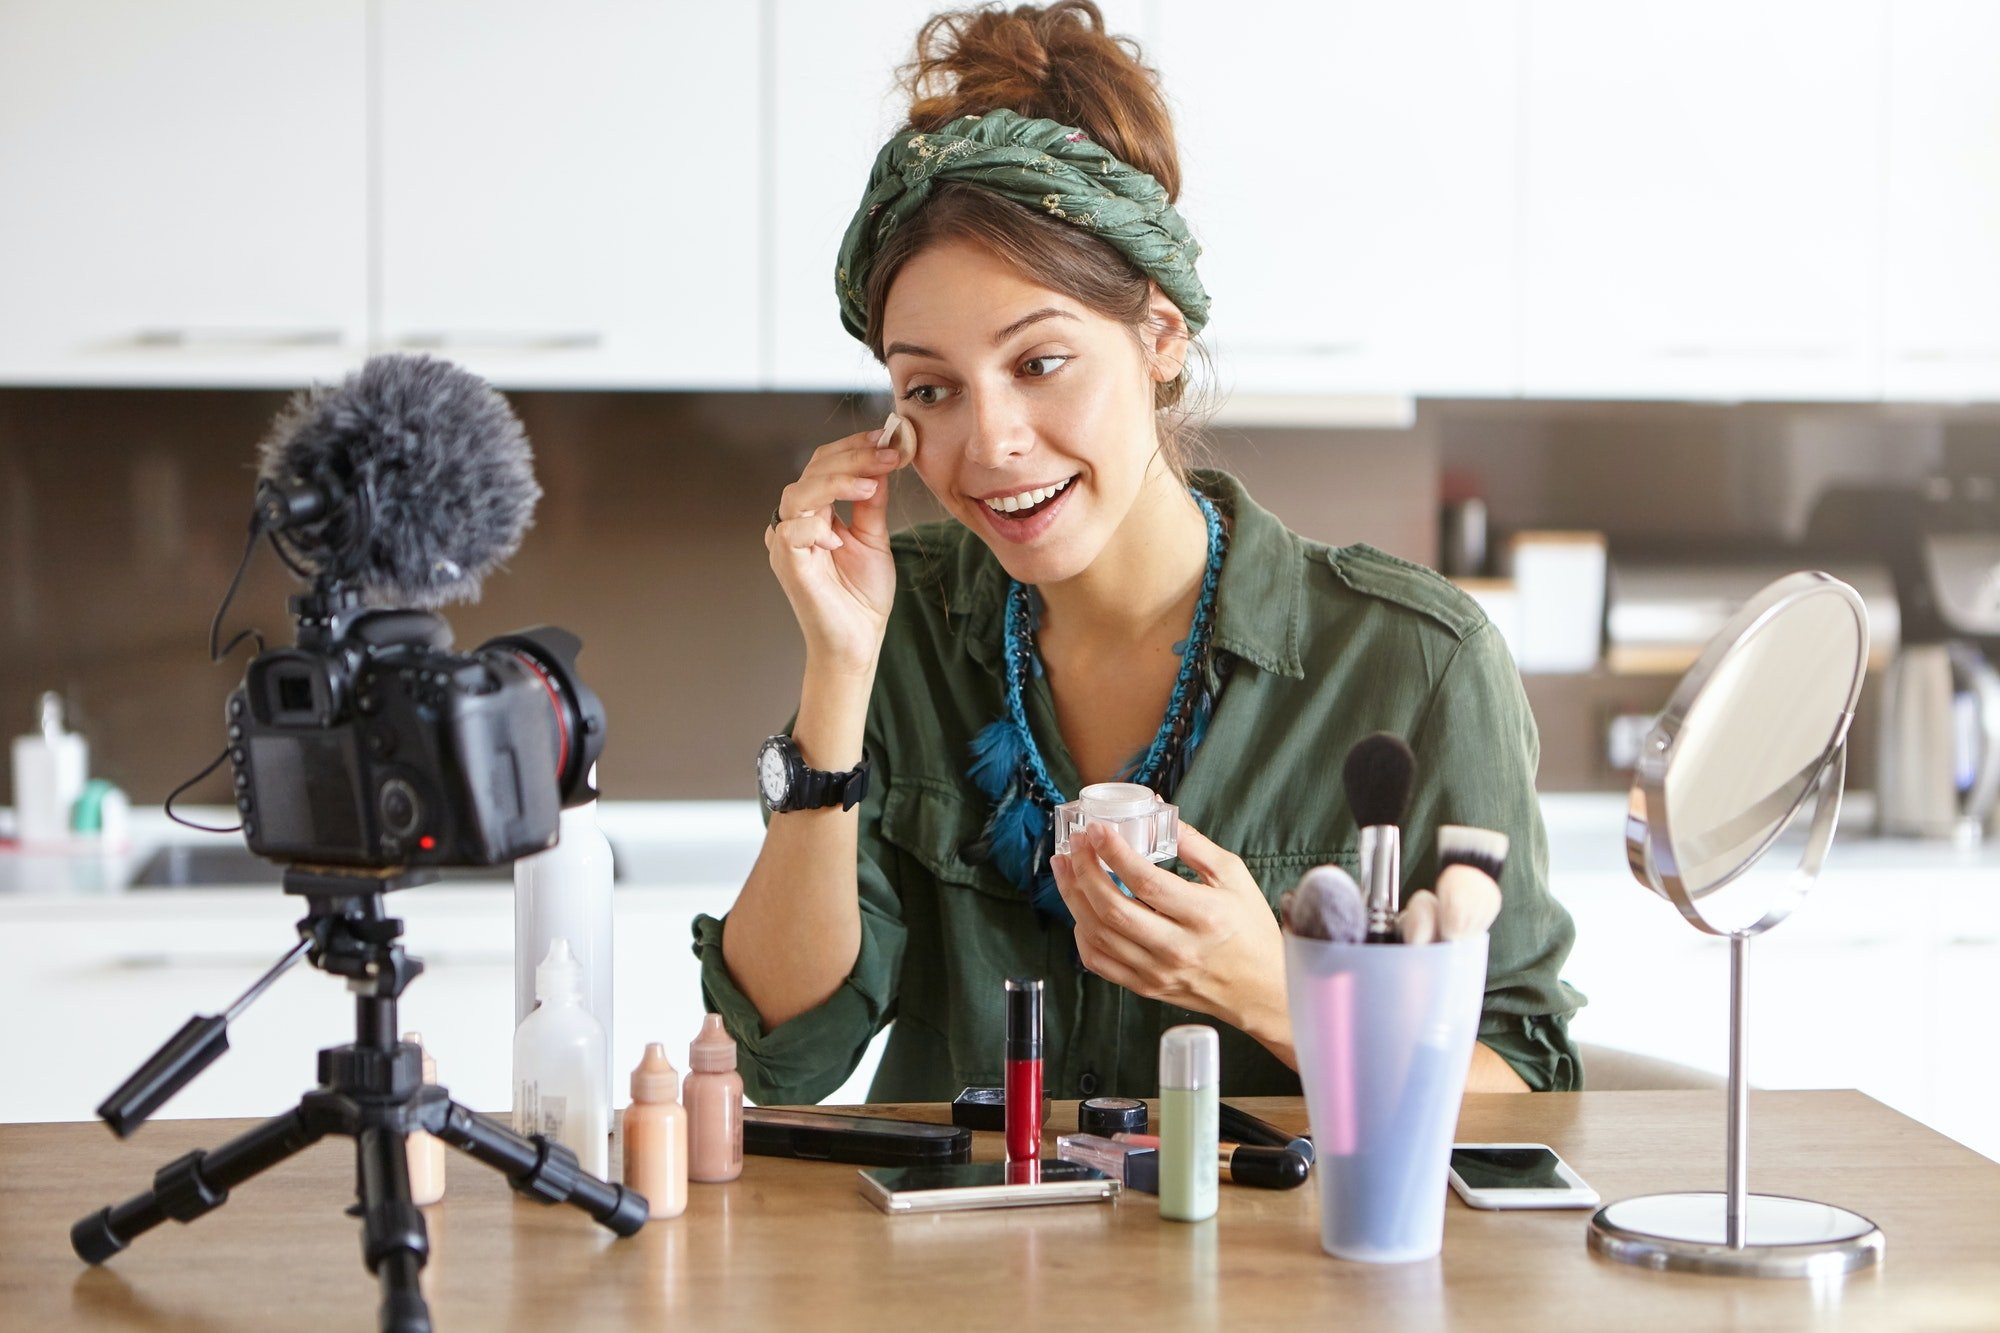 Attractive young woman beauty fashion blogger using sponge while applying powder, talking about cosm